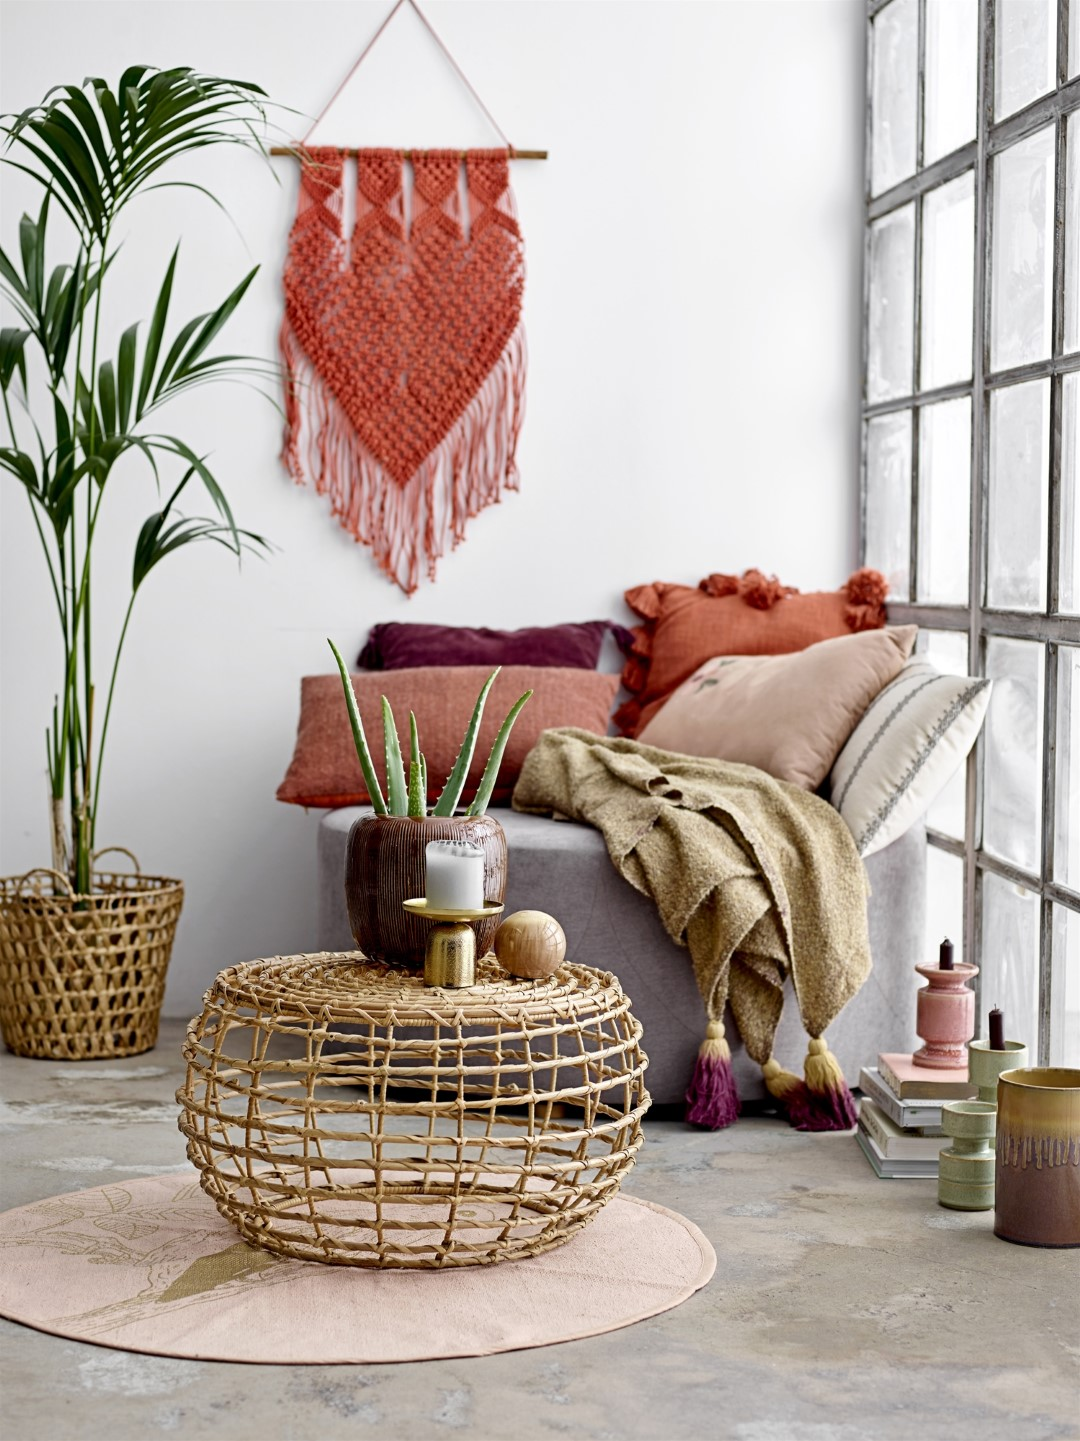 White room with red wall hanging and rattan table